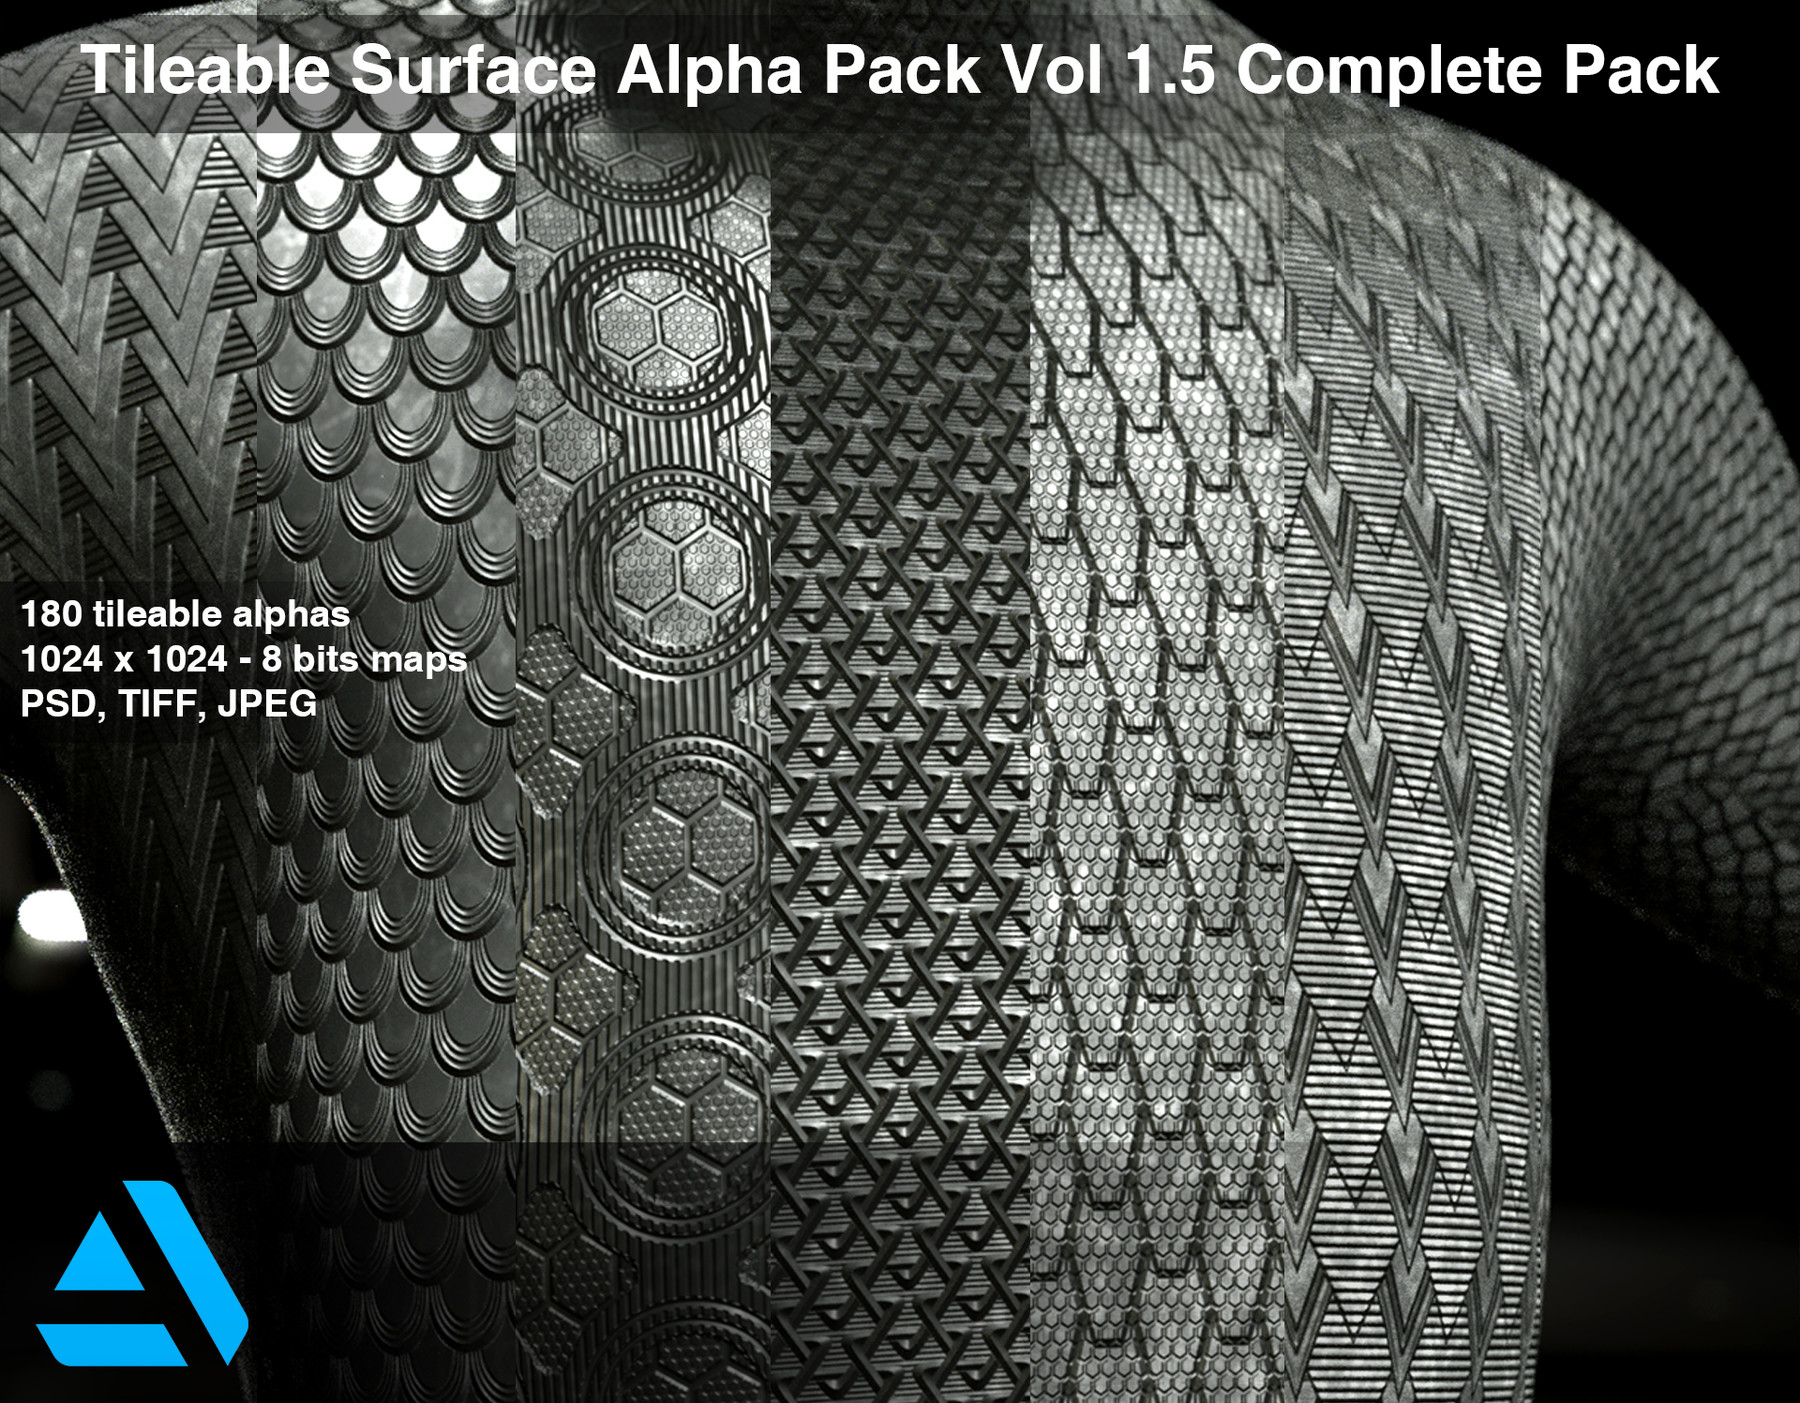 Tileable Surface Alpha Pack Vol 1.5 Complete Pack